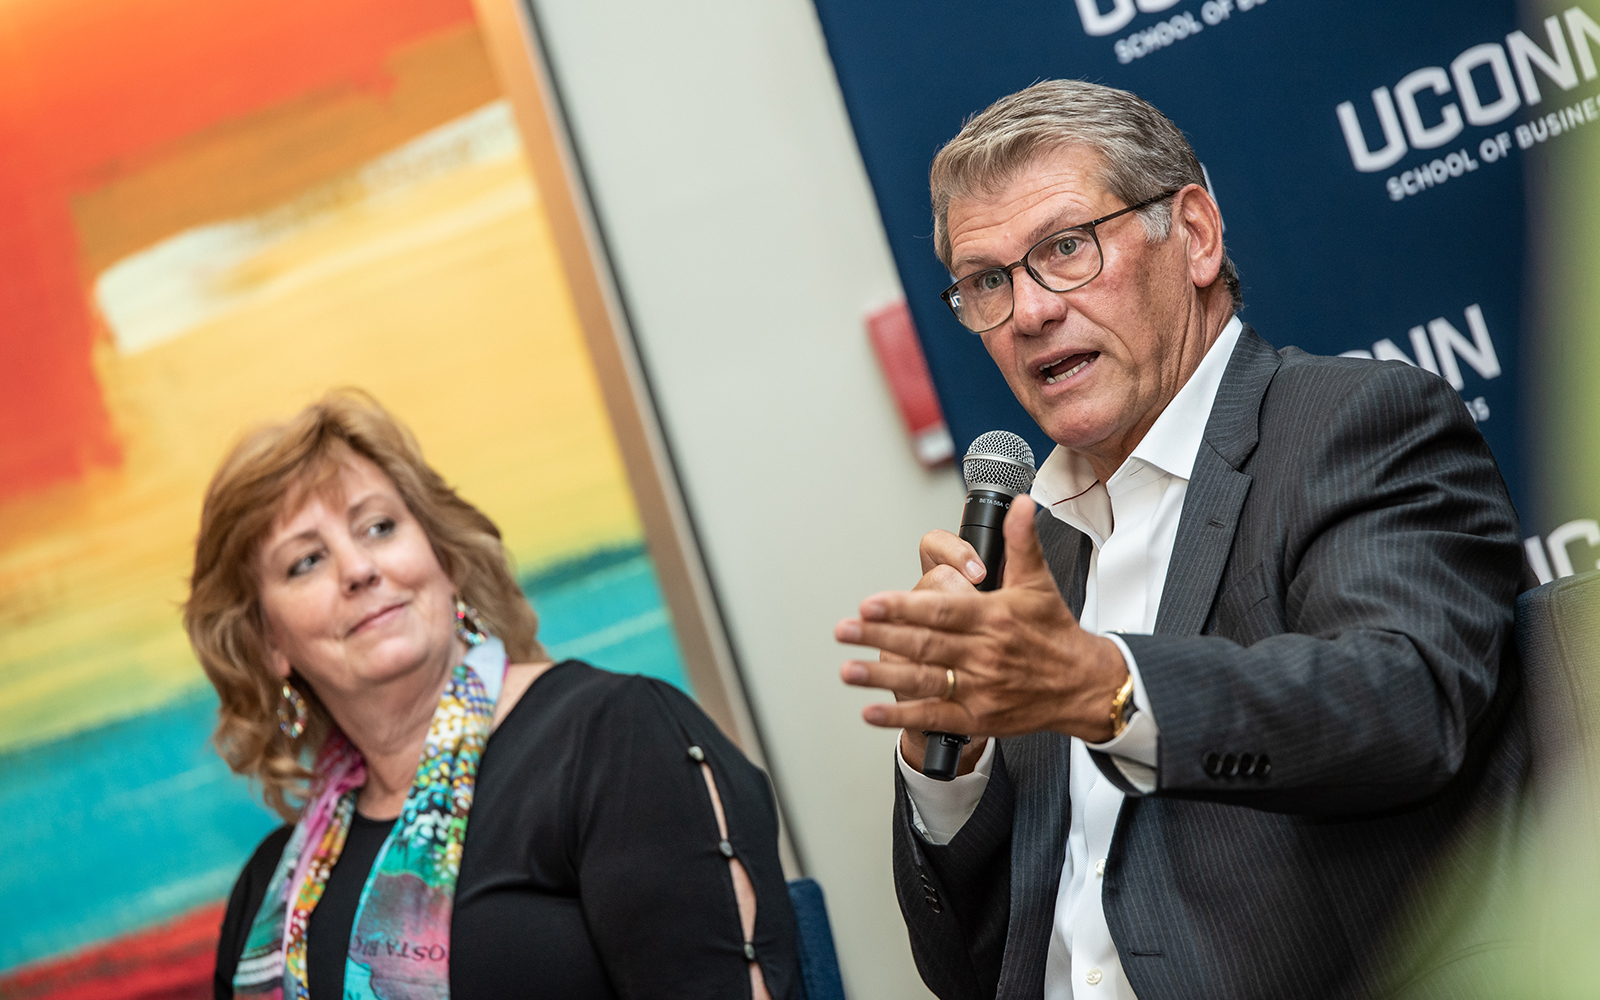 Lucy Gilson (left), Associate Dean of the UConn School of Business and Geno Auriemma (right), Head Coach of UConn Women's Basketball, speak during the first day of the Leadership Conference.  This year's program focused on leading through complexity and uncertainty. (Nathan Oldham / UConn School of Business)